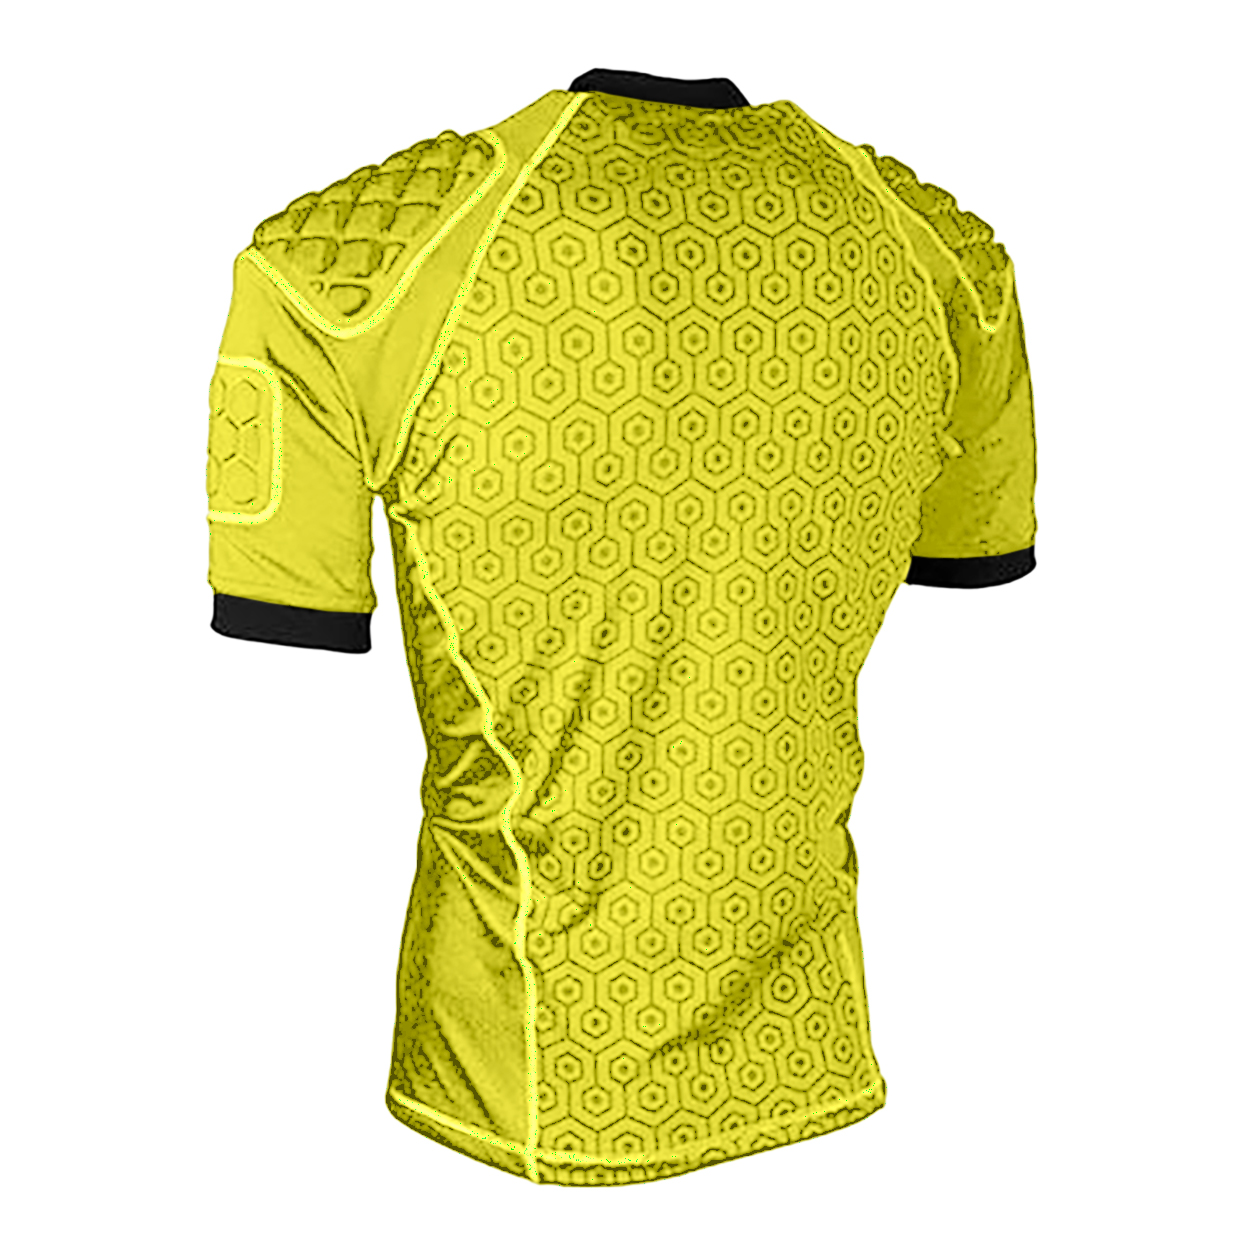 Rhino Unisex Adult Pro Body Protection Top (L) (Yellow)